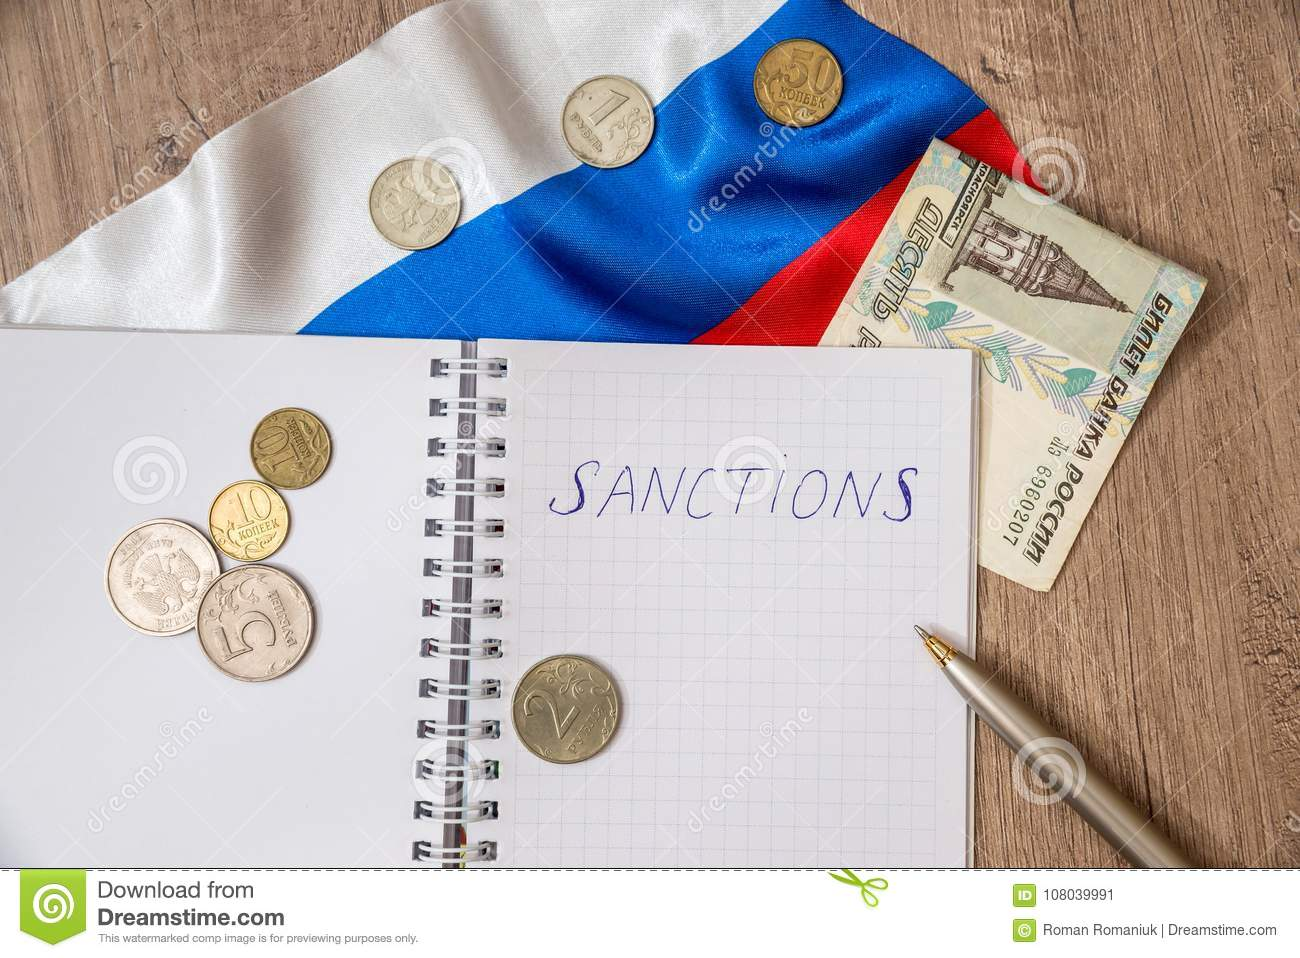 Sanctions of russia